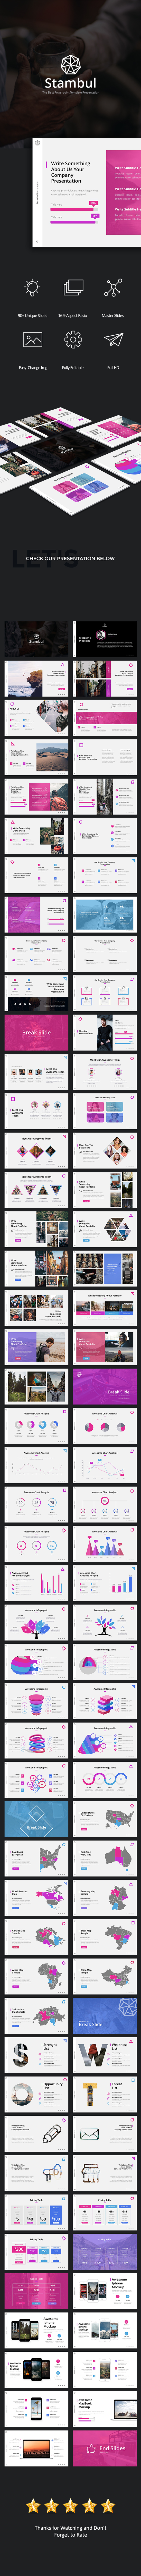 GraphicRiver Stambul Powerpoint Presentation Template 21092594